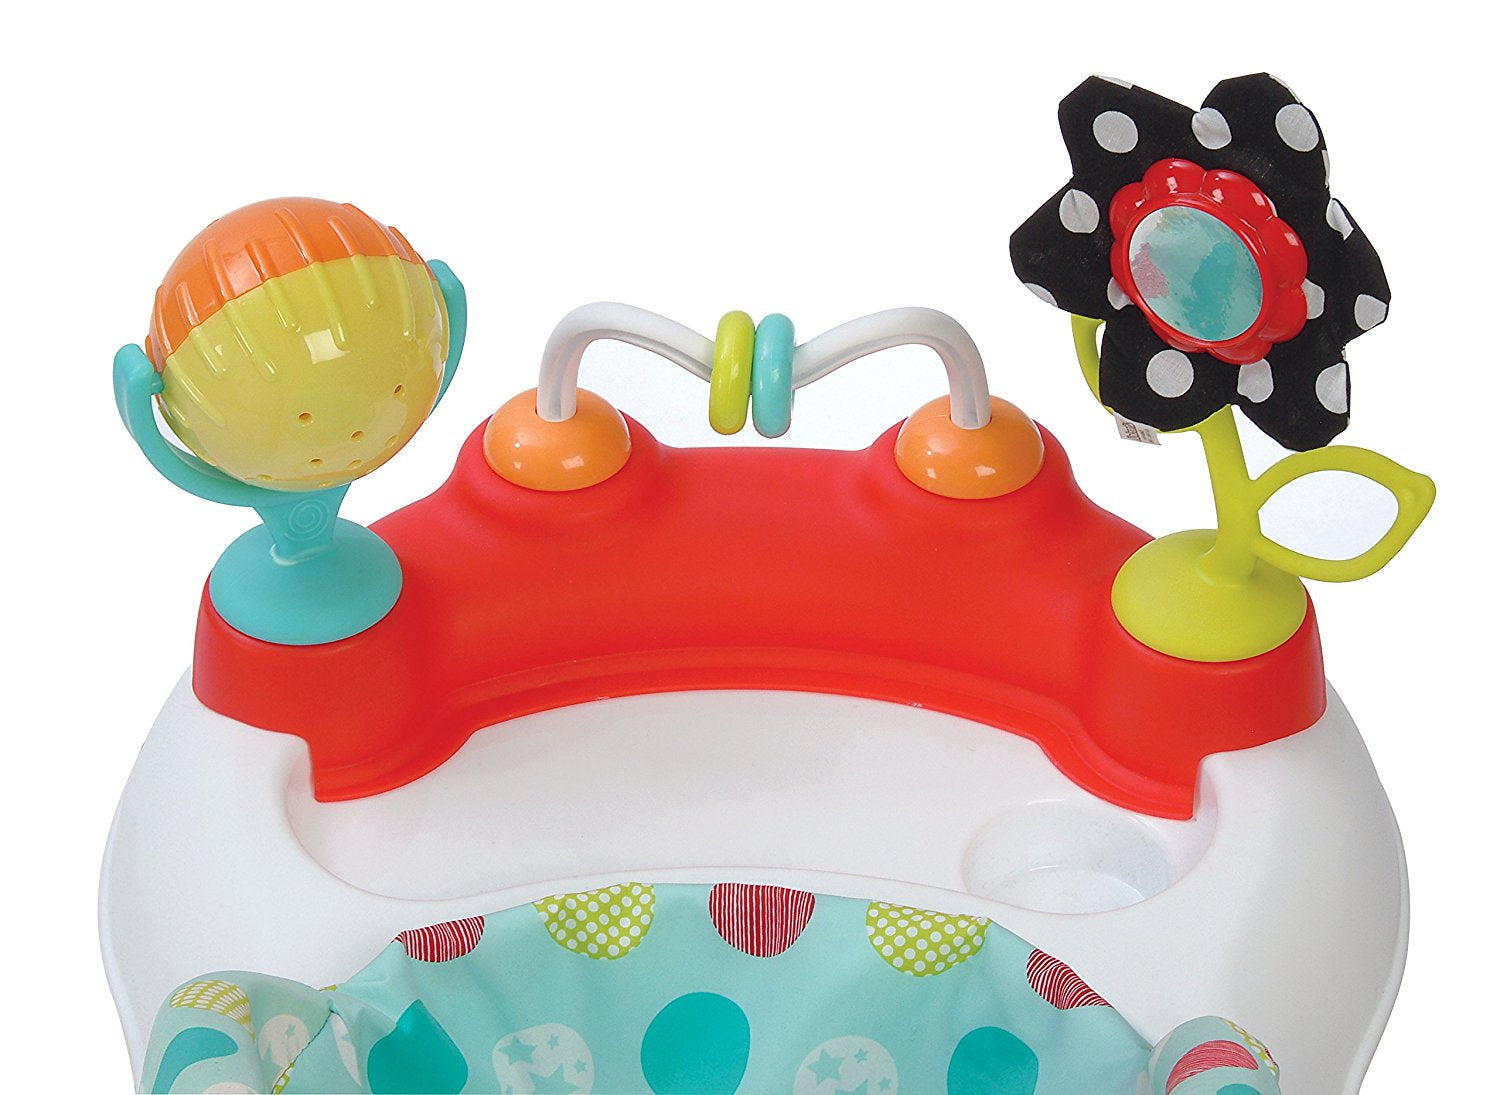 Seated or Easy to Kolcraft Tiny Steps 2-in-1 Activity Toddler and Baby Walker